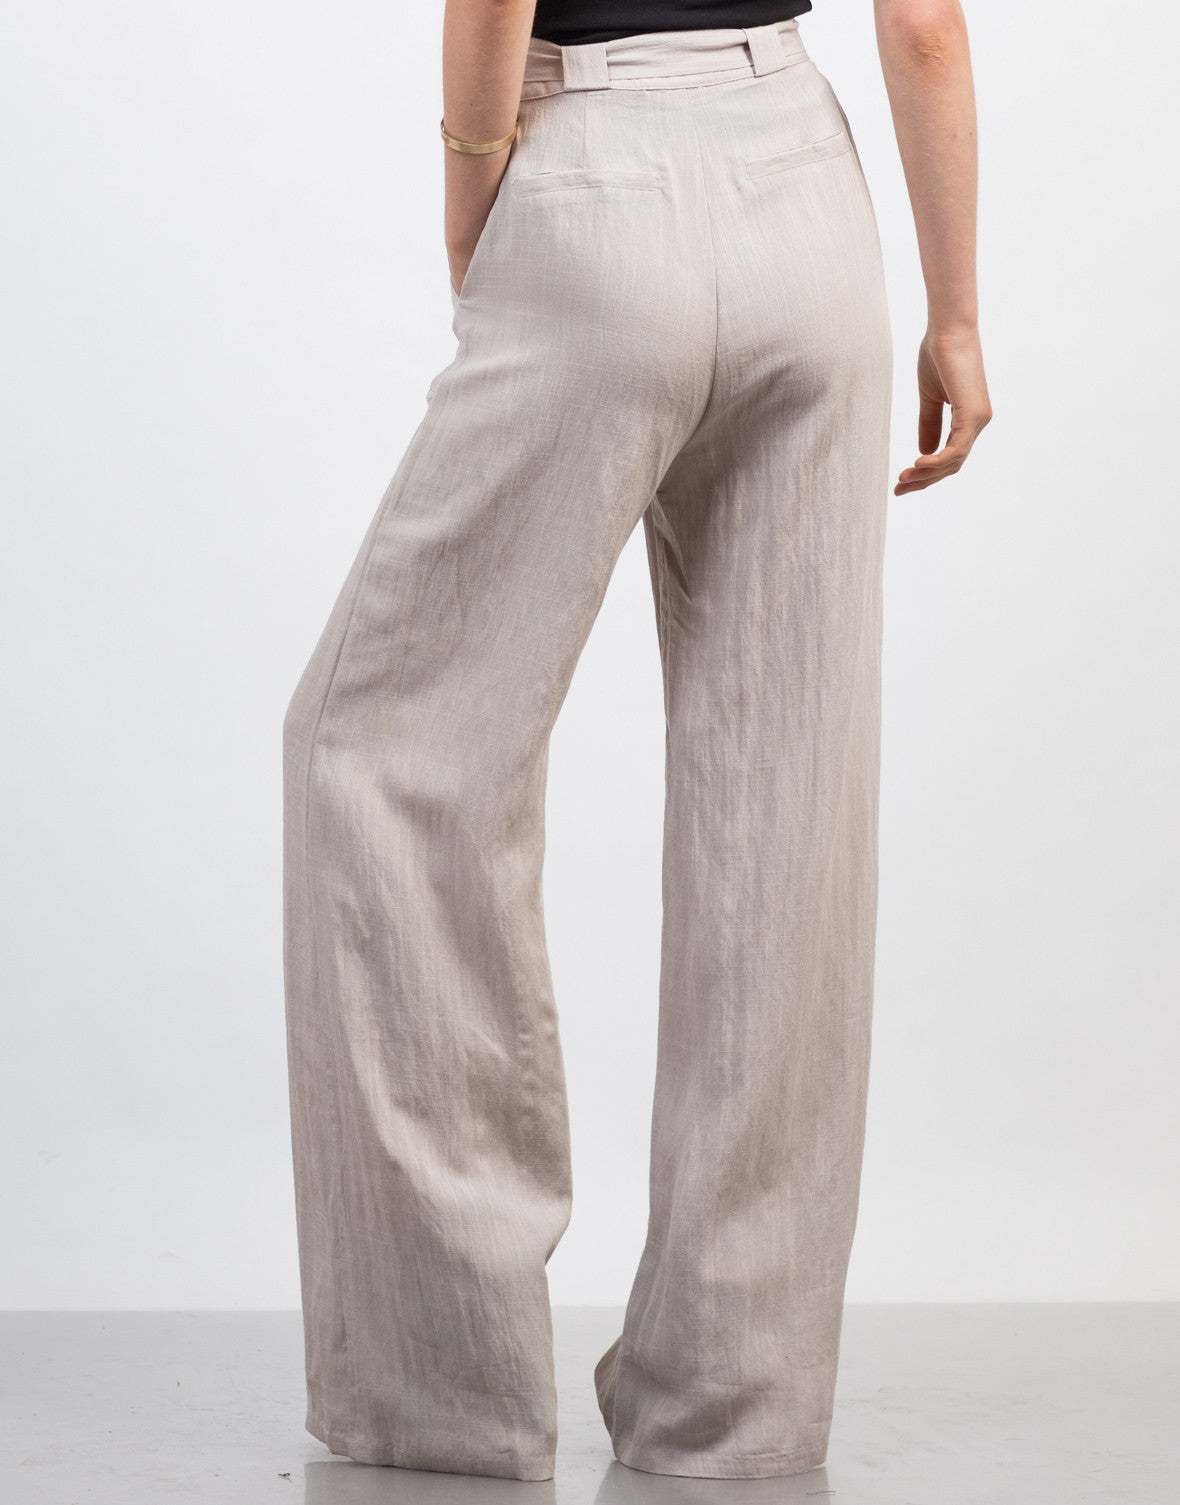 Back View of Linen Palazzo Pants